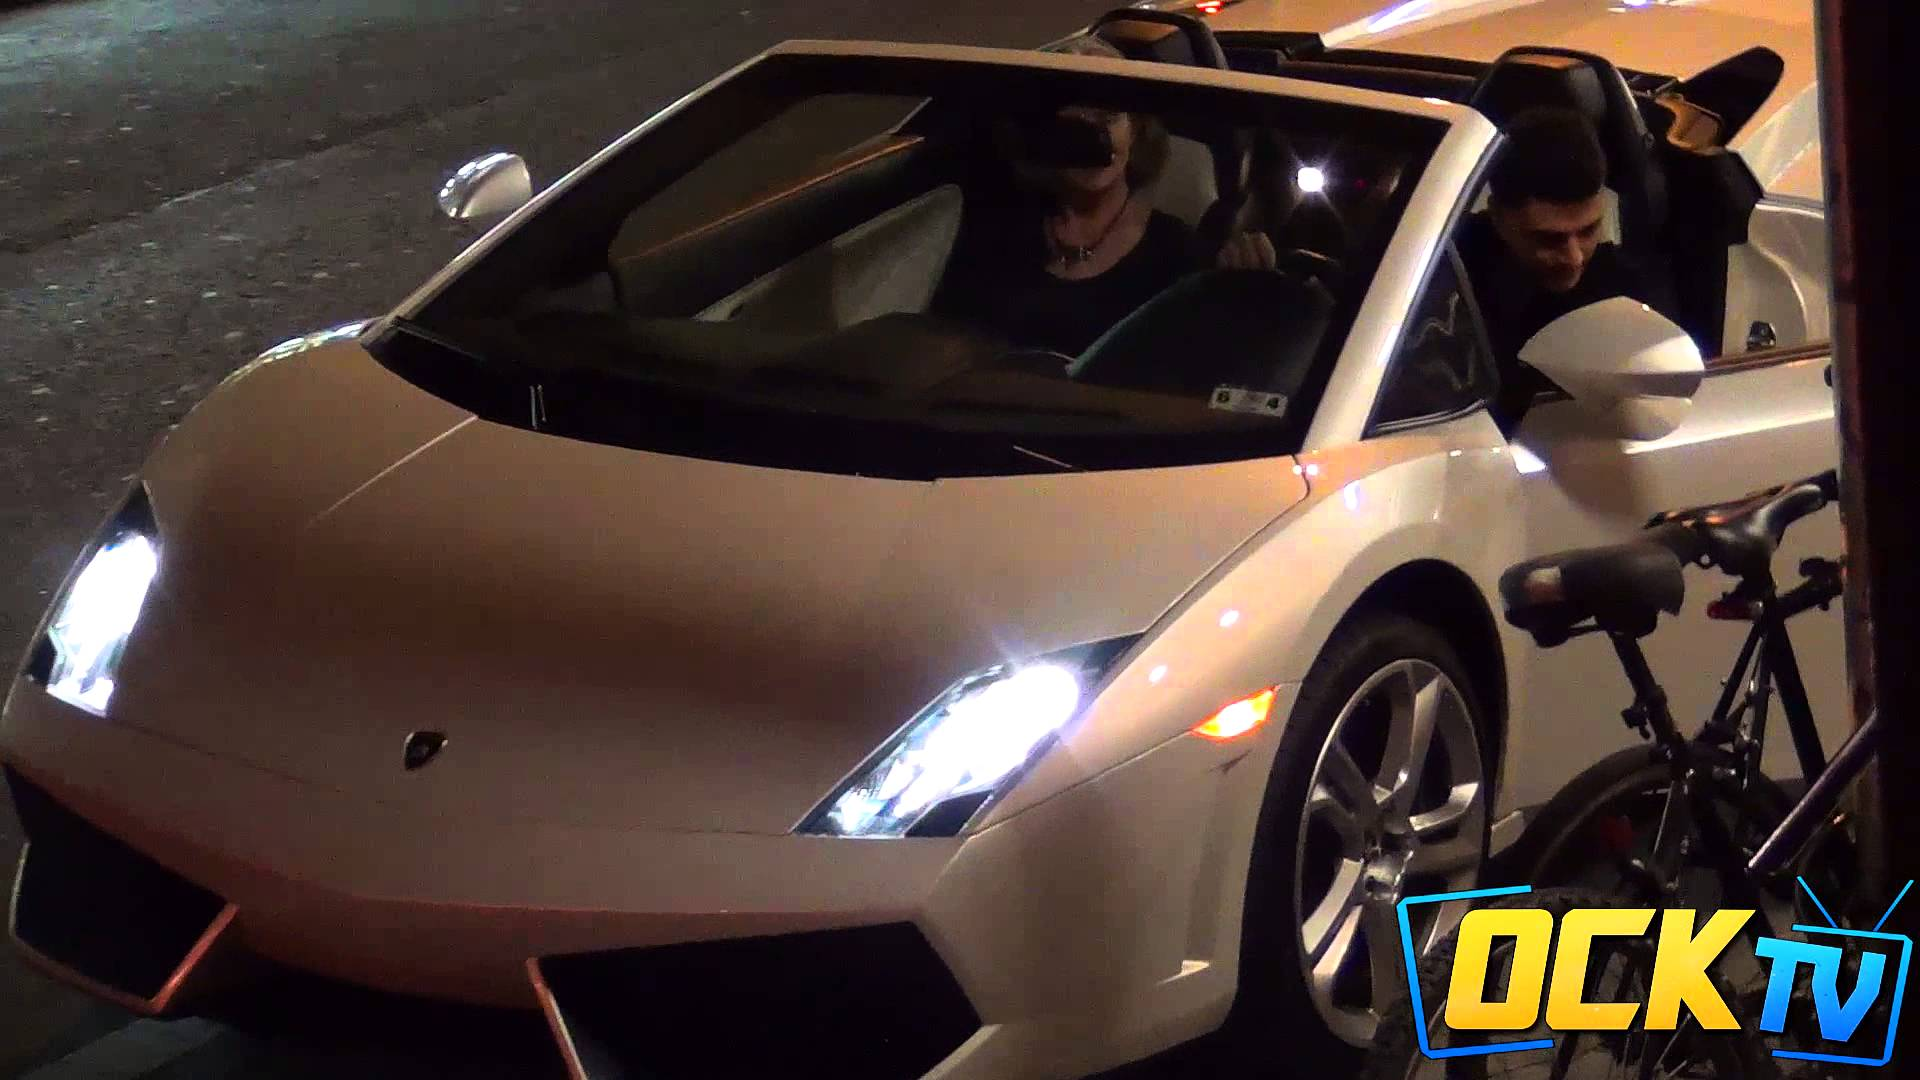 Picking Up Grandmas With a Lamborghini, One Woman Disses Husband For A Ride